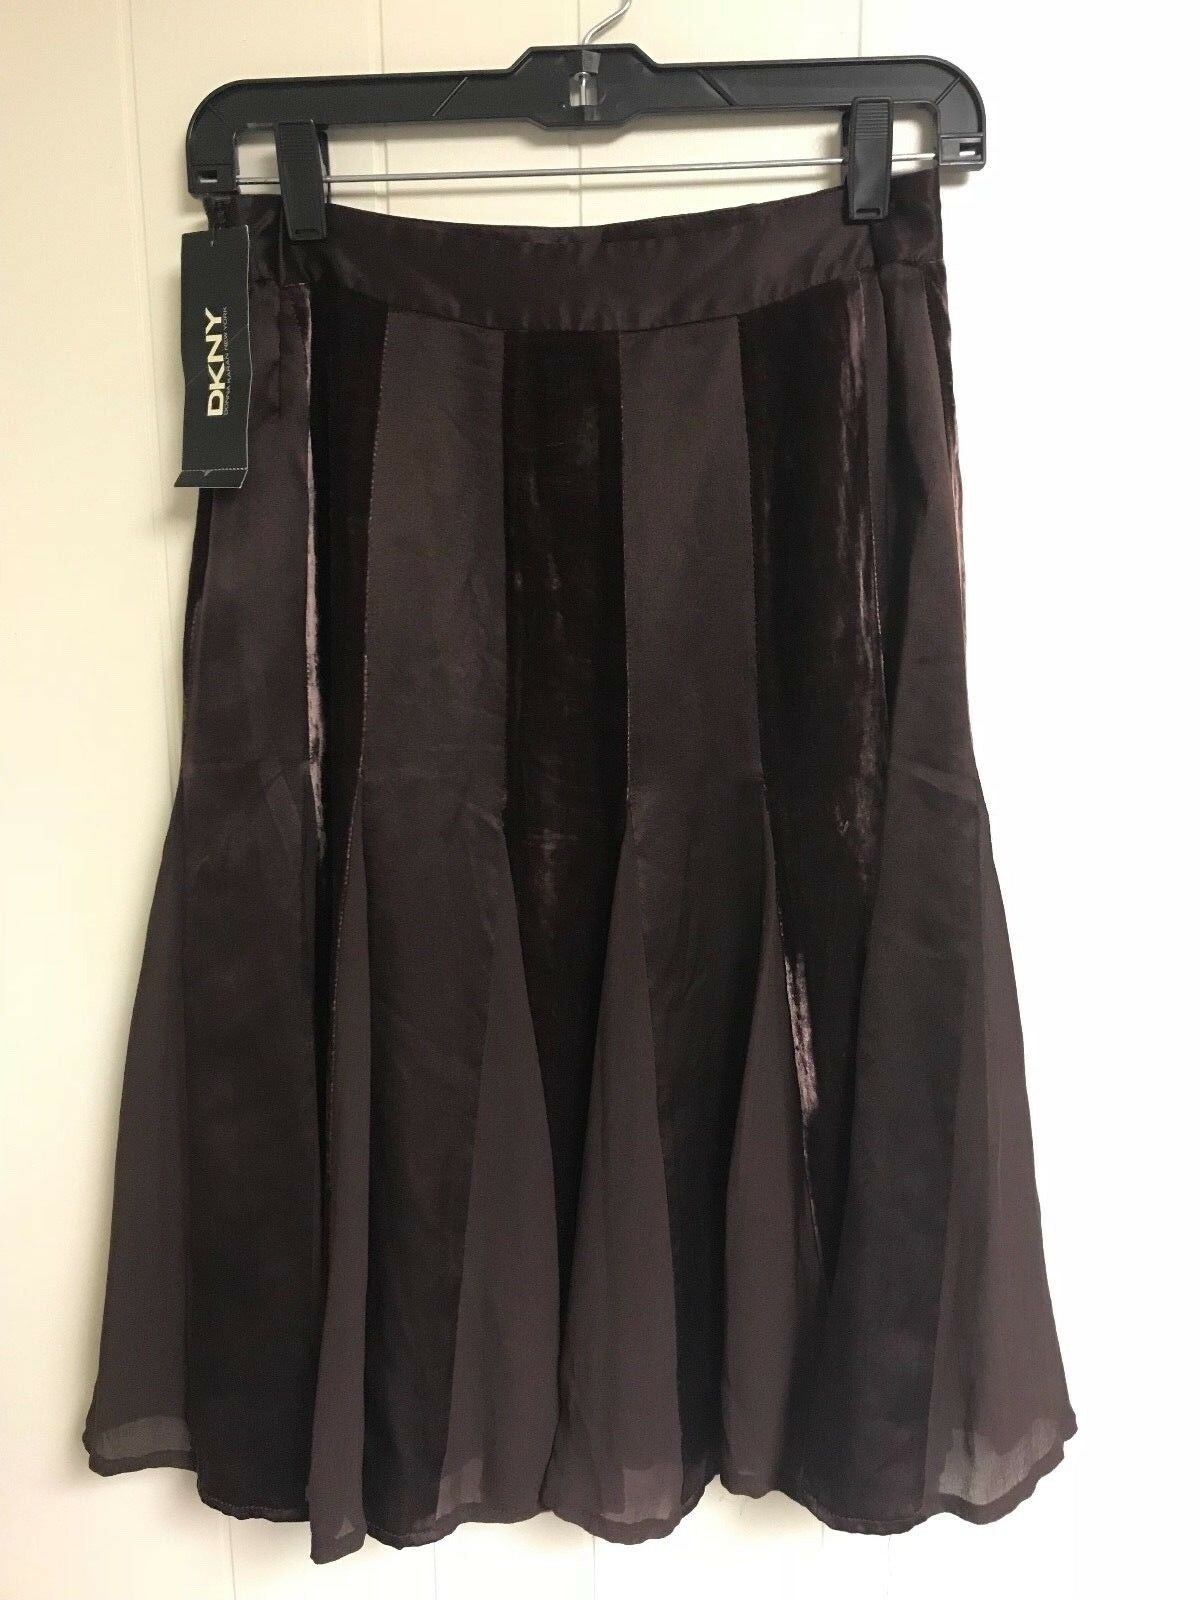 DKNY BROWN SKIRT STYLE P341772GC NEW WITH TAG